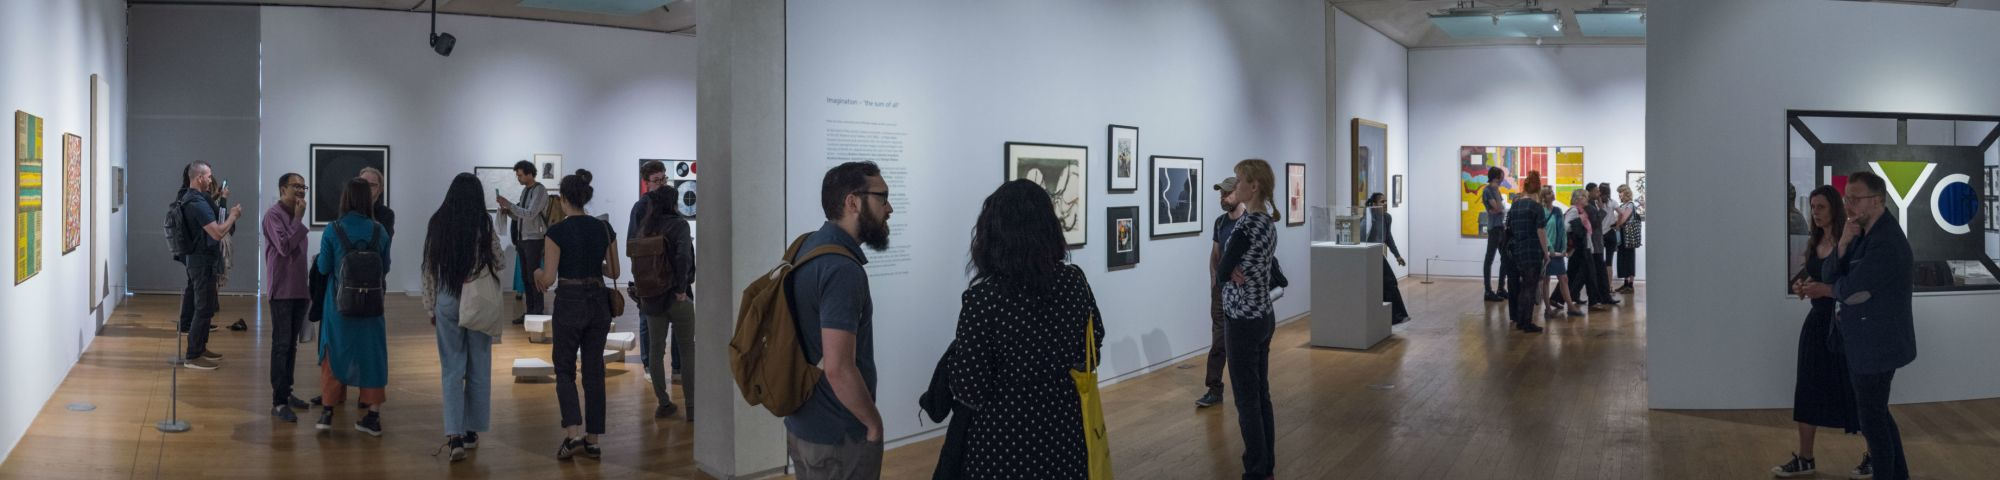 People looking at artworks in an exhibtion